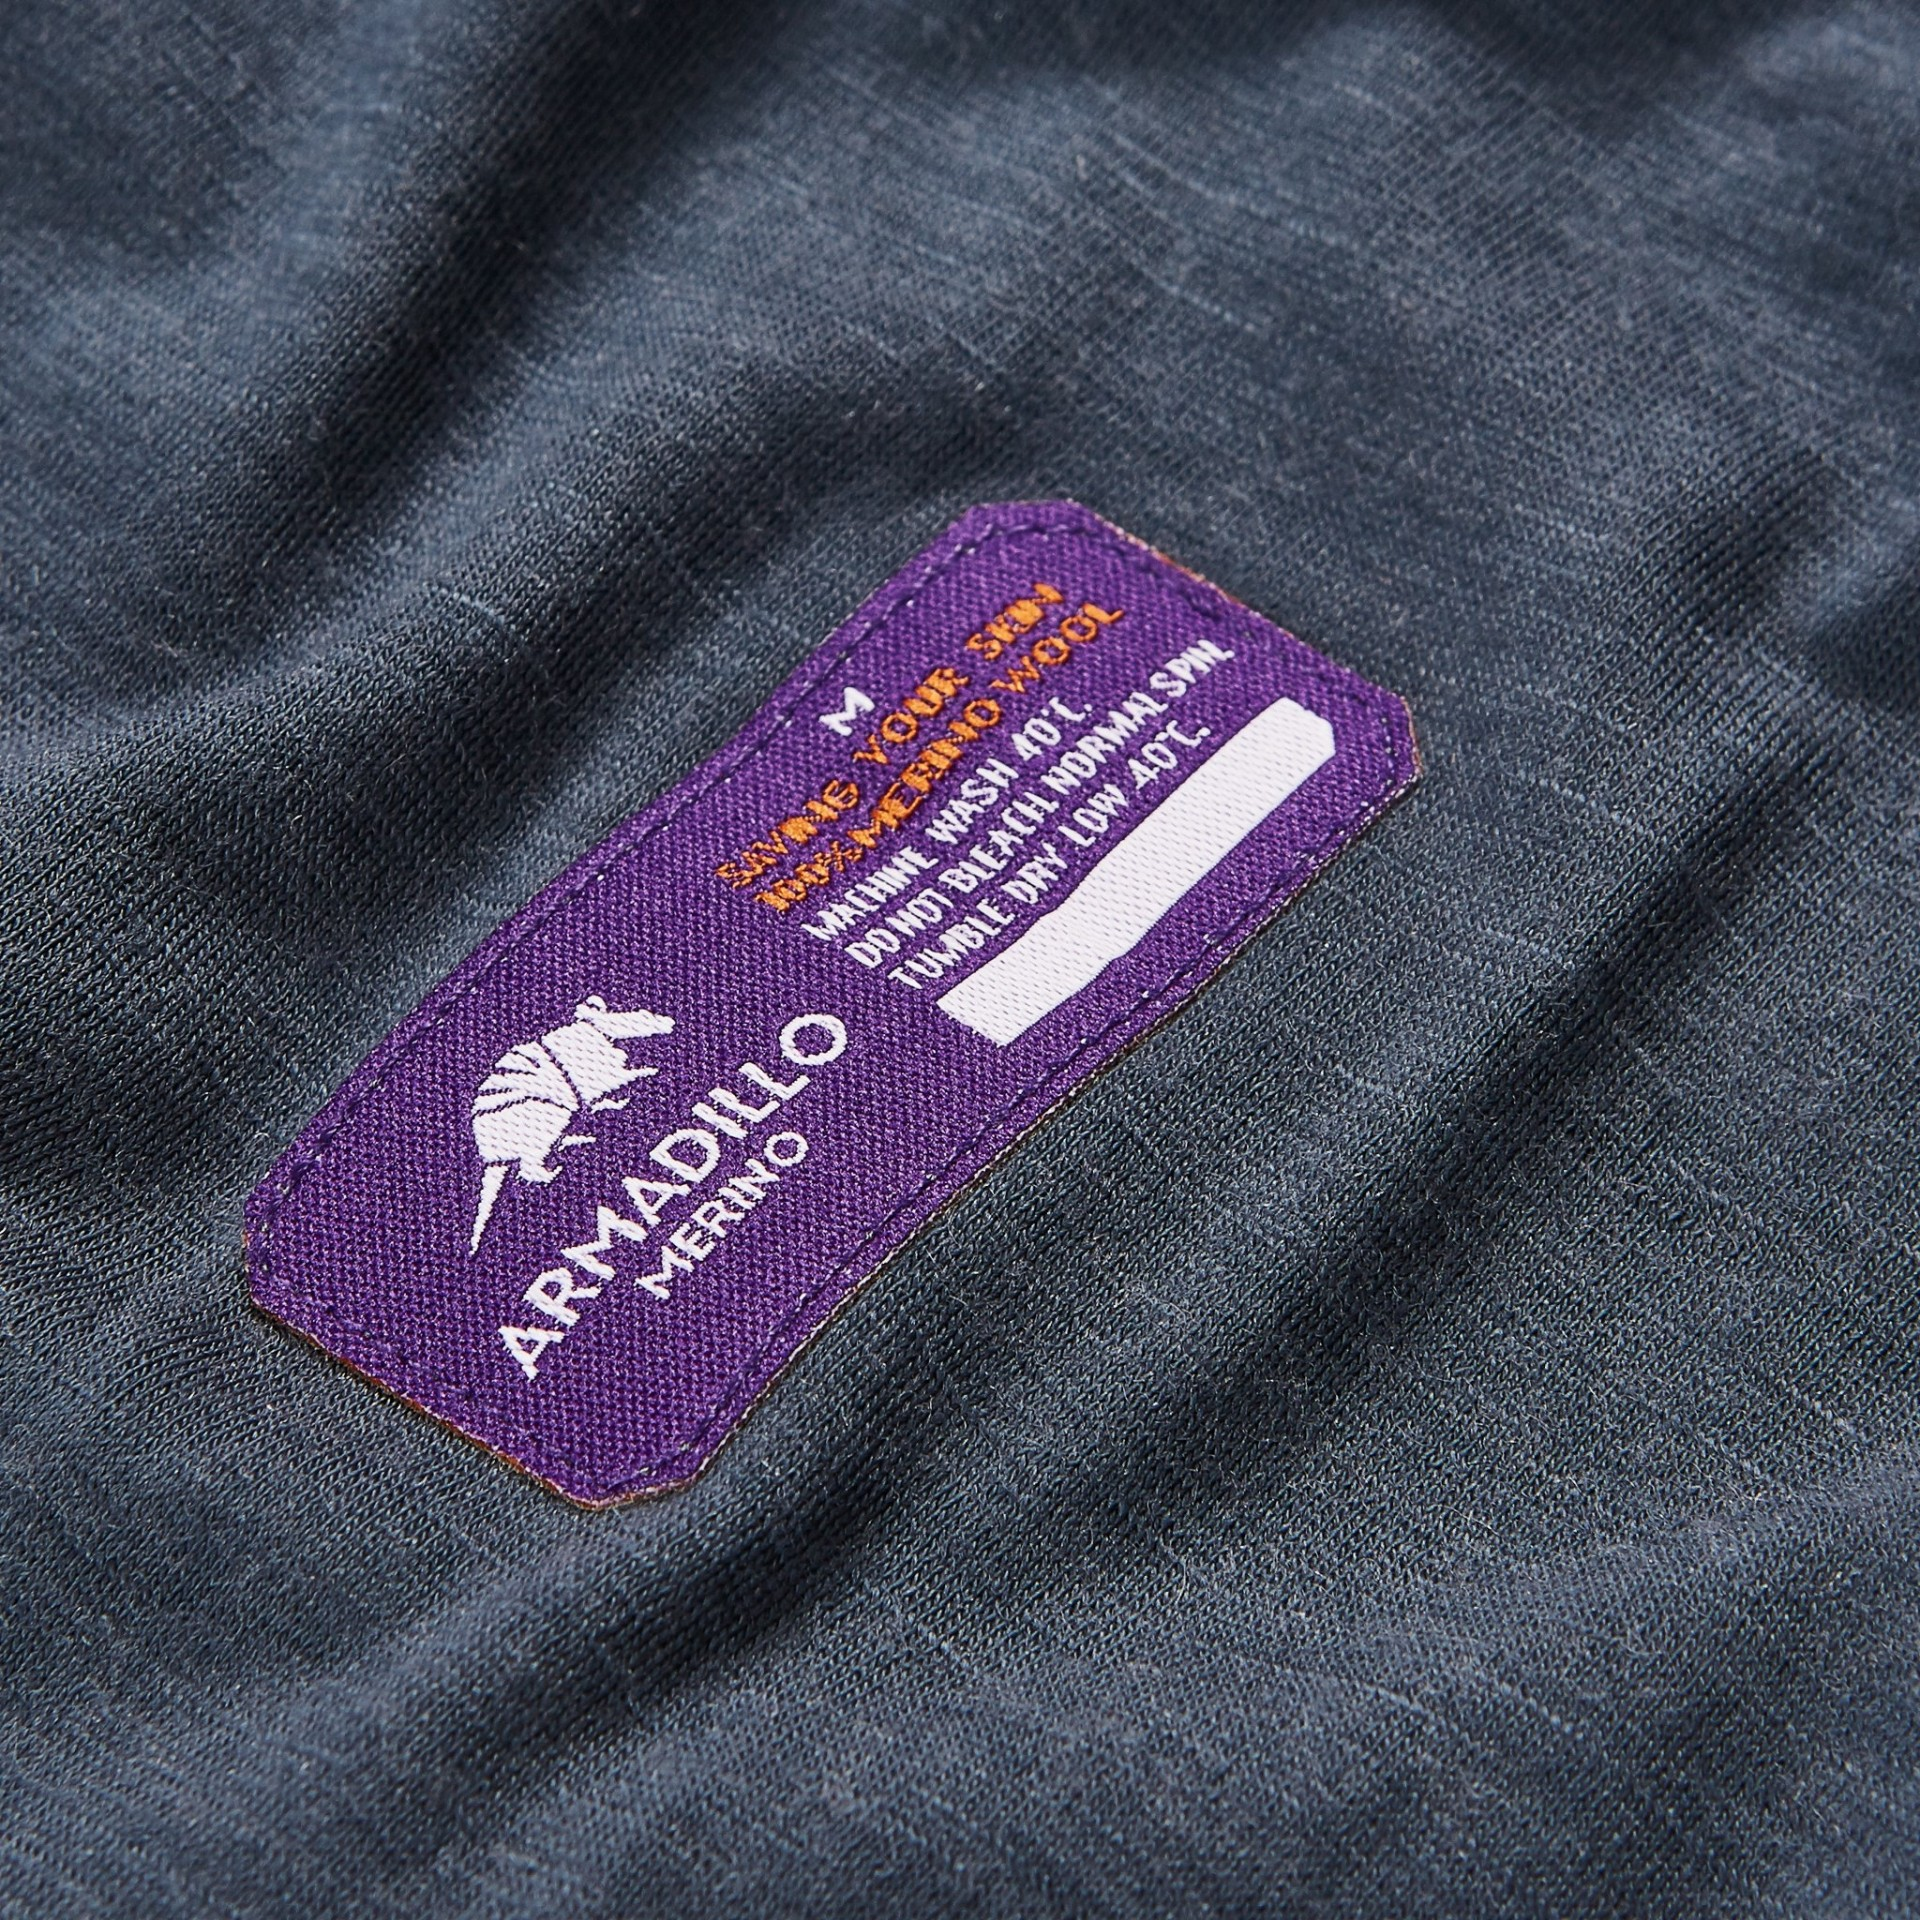 Labels on the outside of merino wool base layers